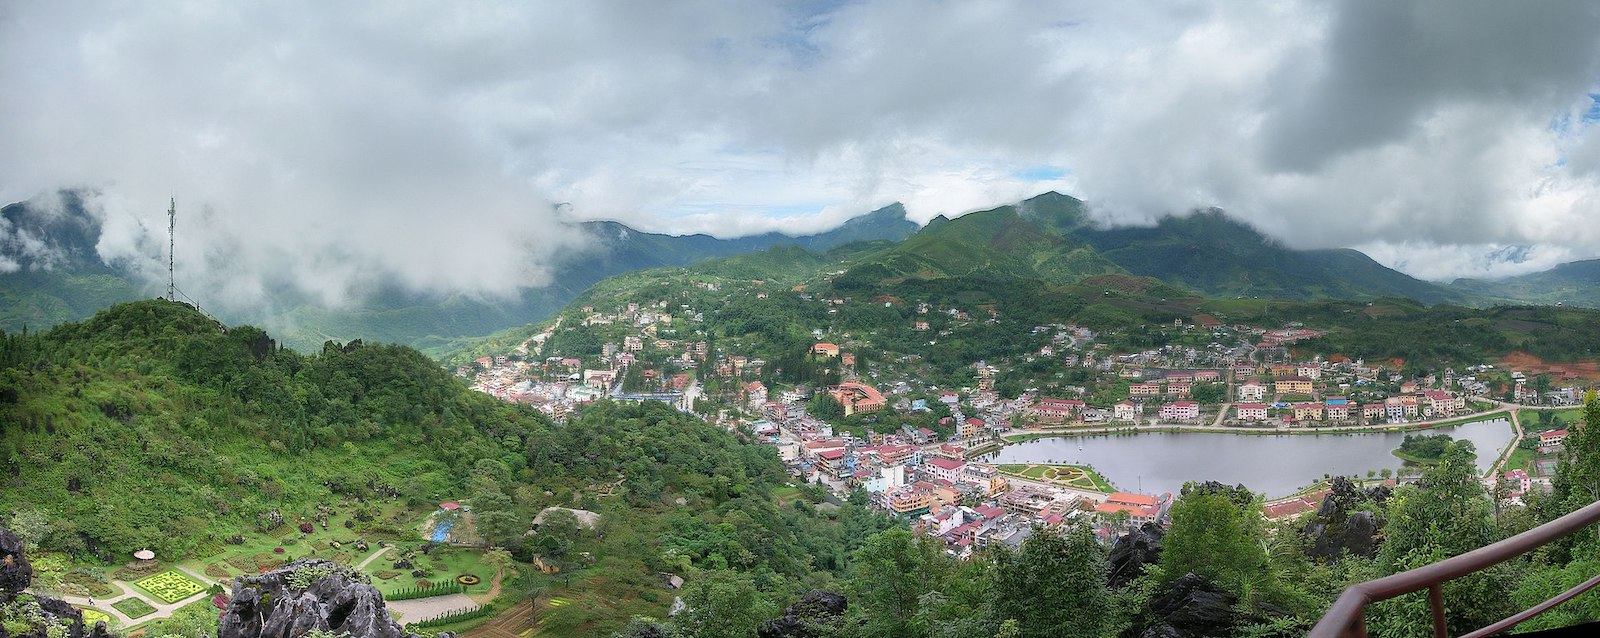 Image of Sapa, Vietnam in the mountains